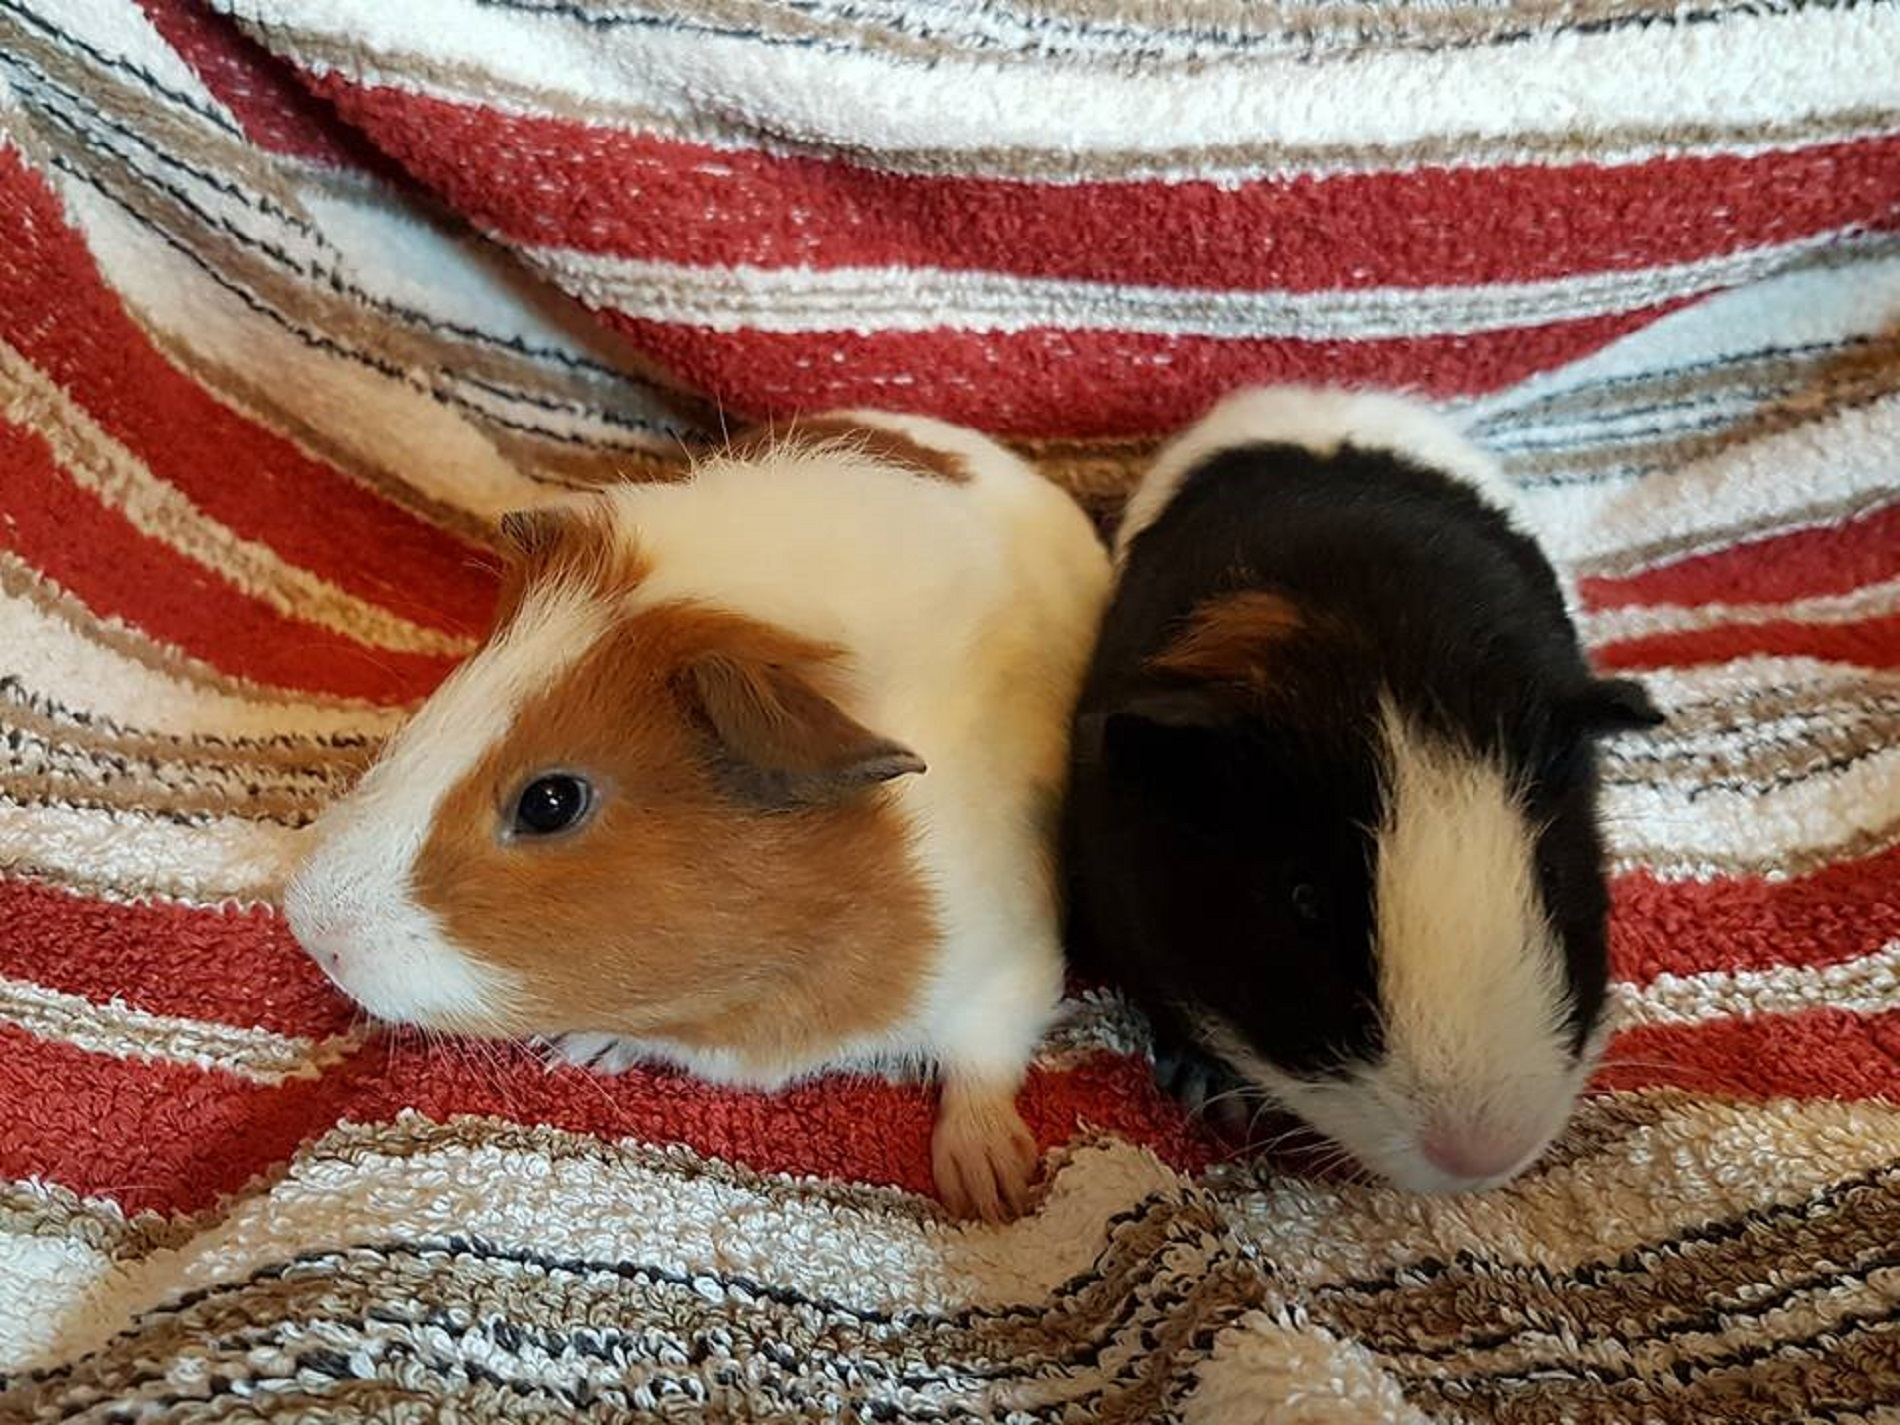 Darcy & Narcy (Ginger Nut & Little Panda) 1/4/17